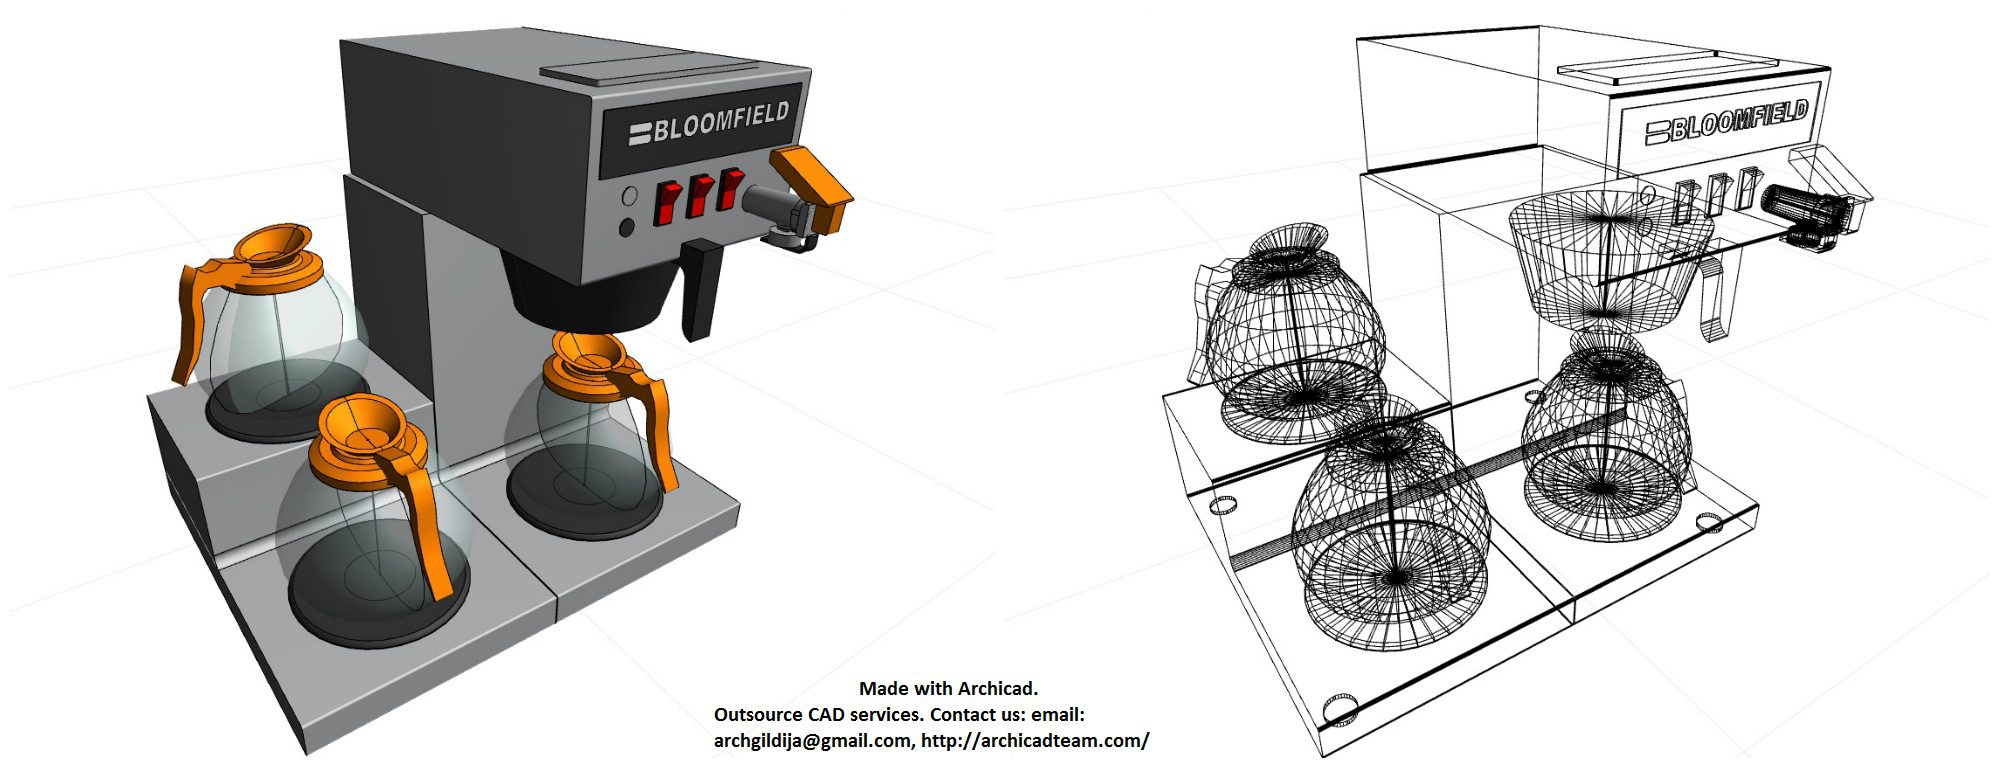 Archicad model Bloomfield cofeemaker by ArchicadTeam.com